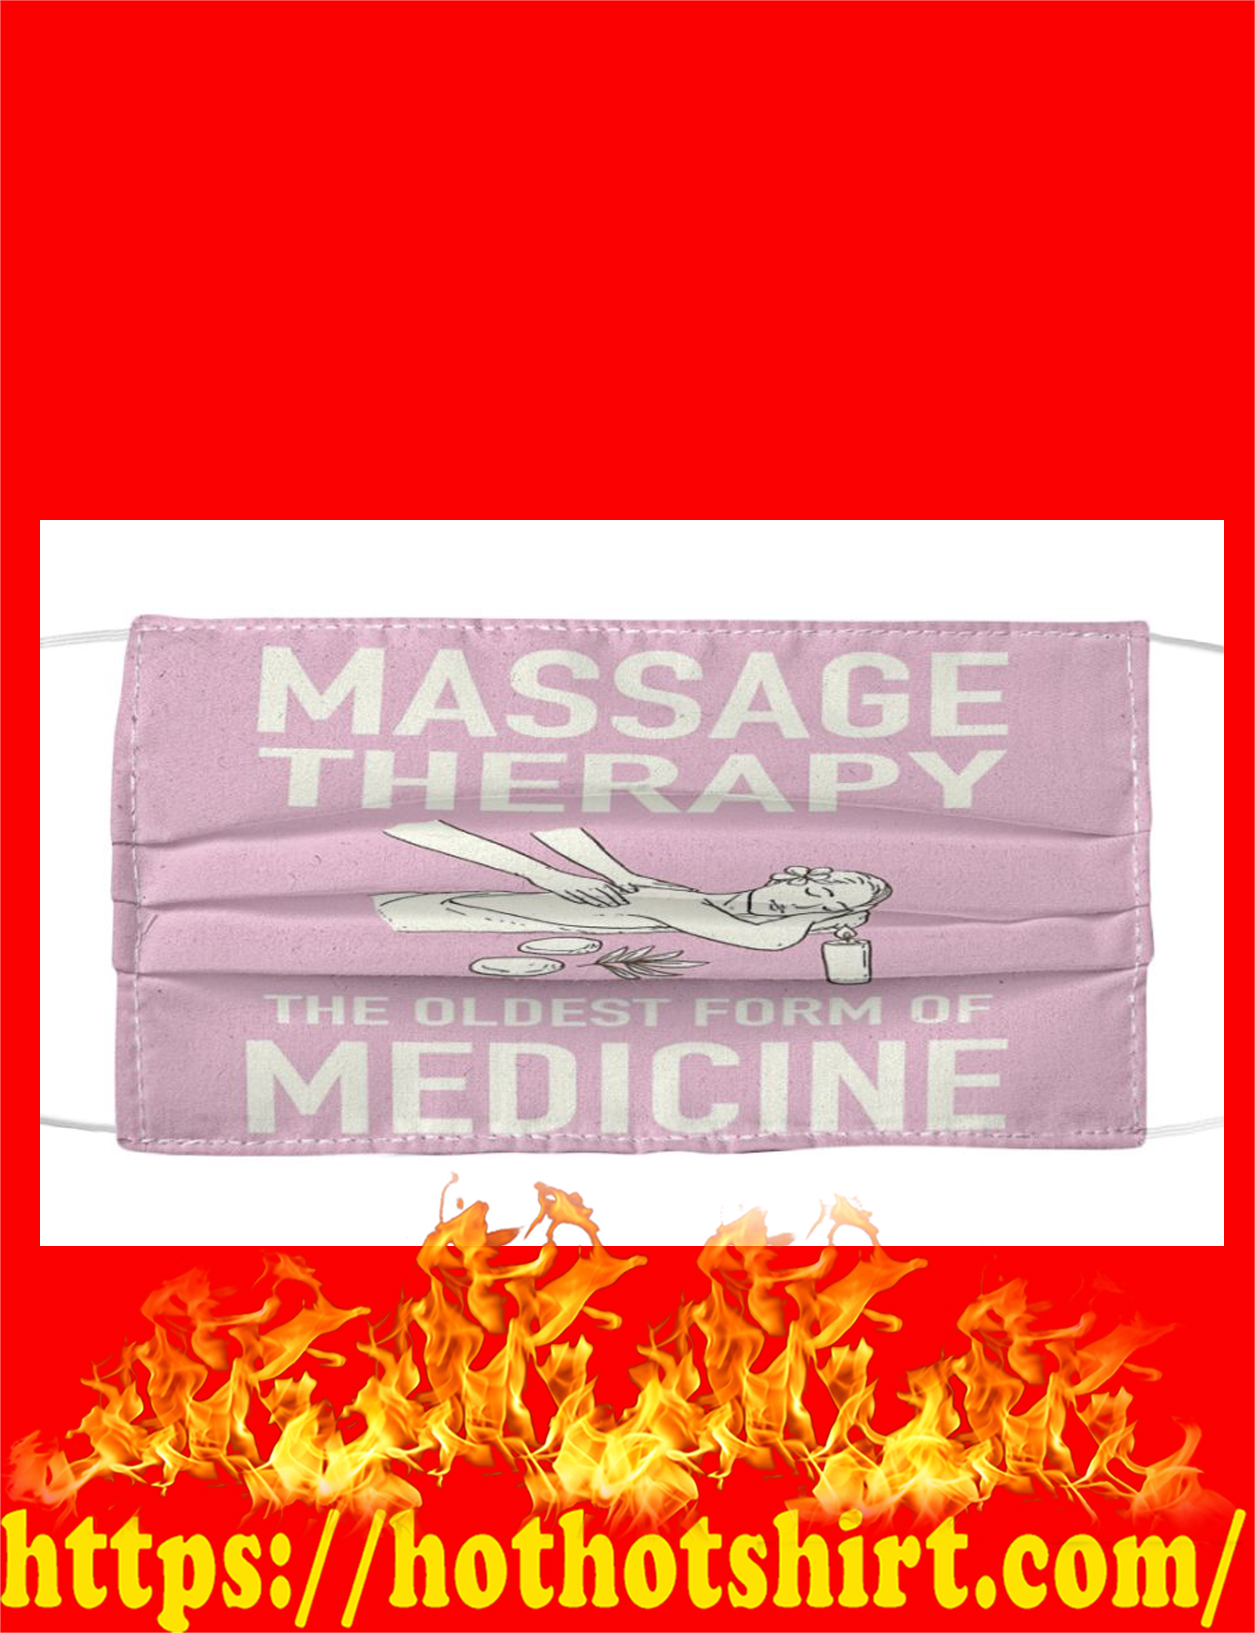 Massage therapy the oldest form of medicine face mask - detail